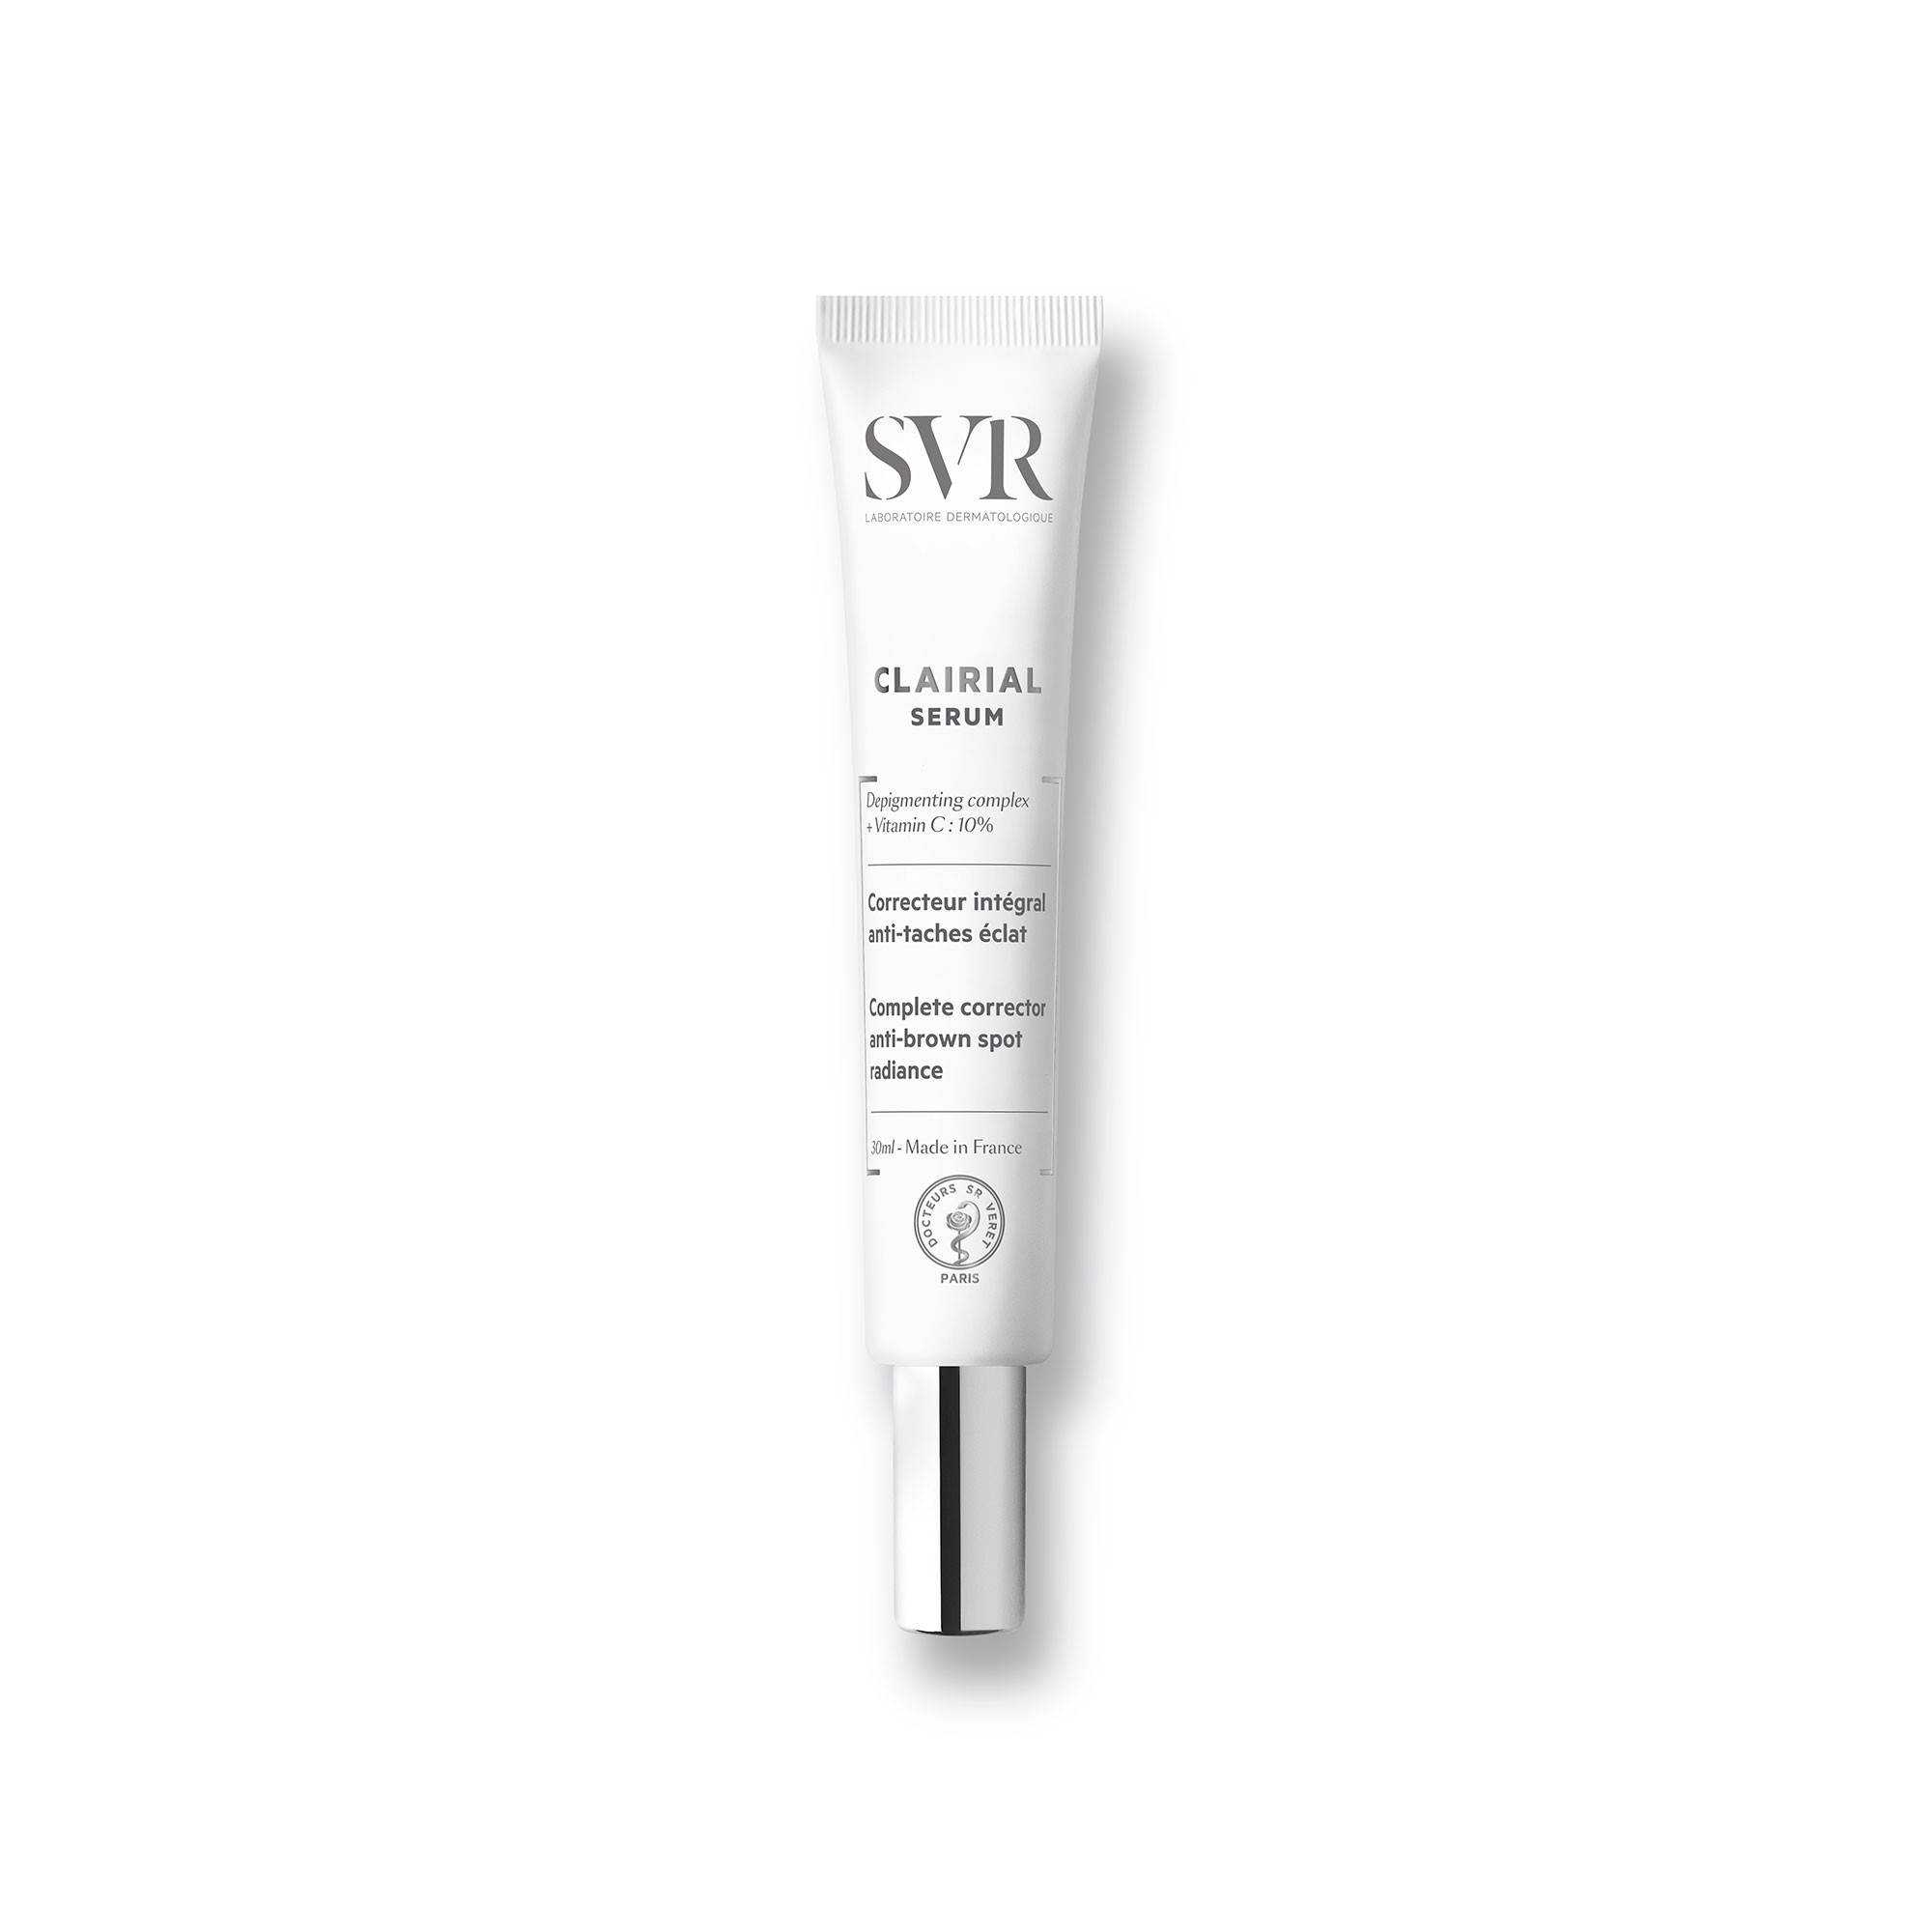 SVR CLAIRIAL SERUM 30ML